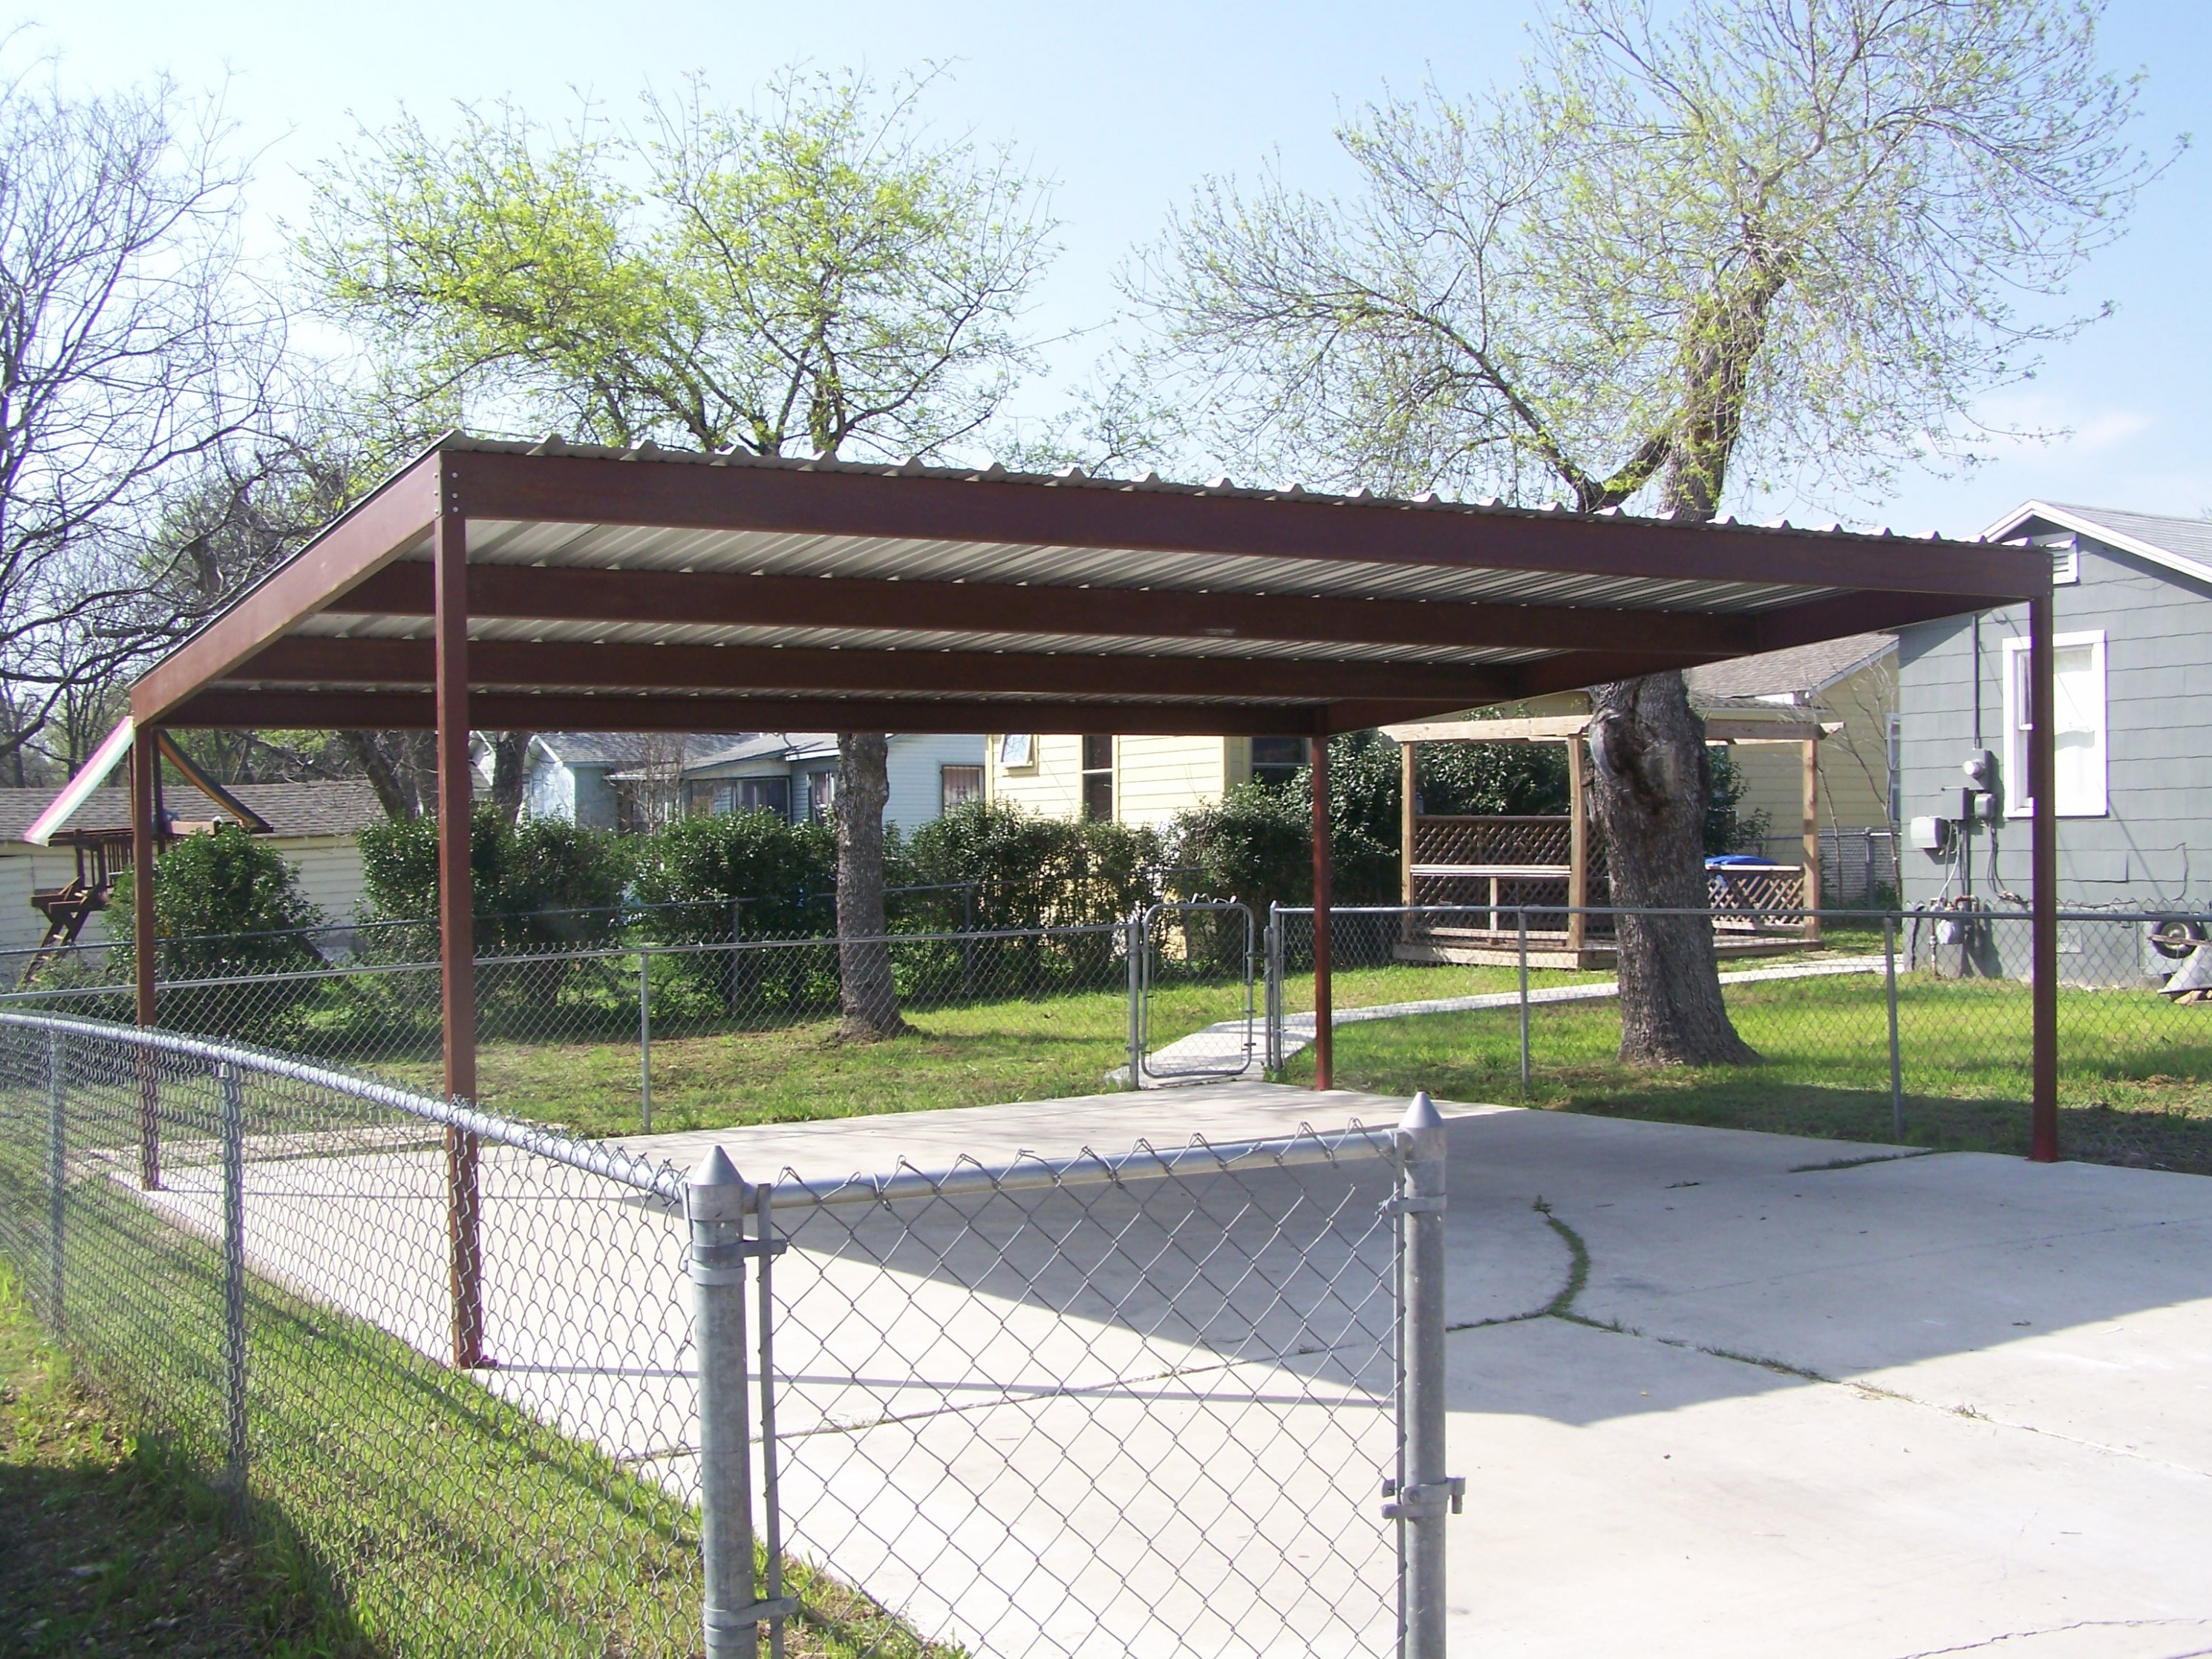 6 Things You Should Know About All Steel Carports | all steel carports